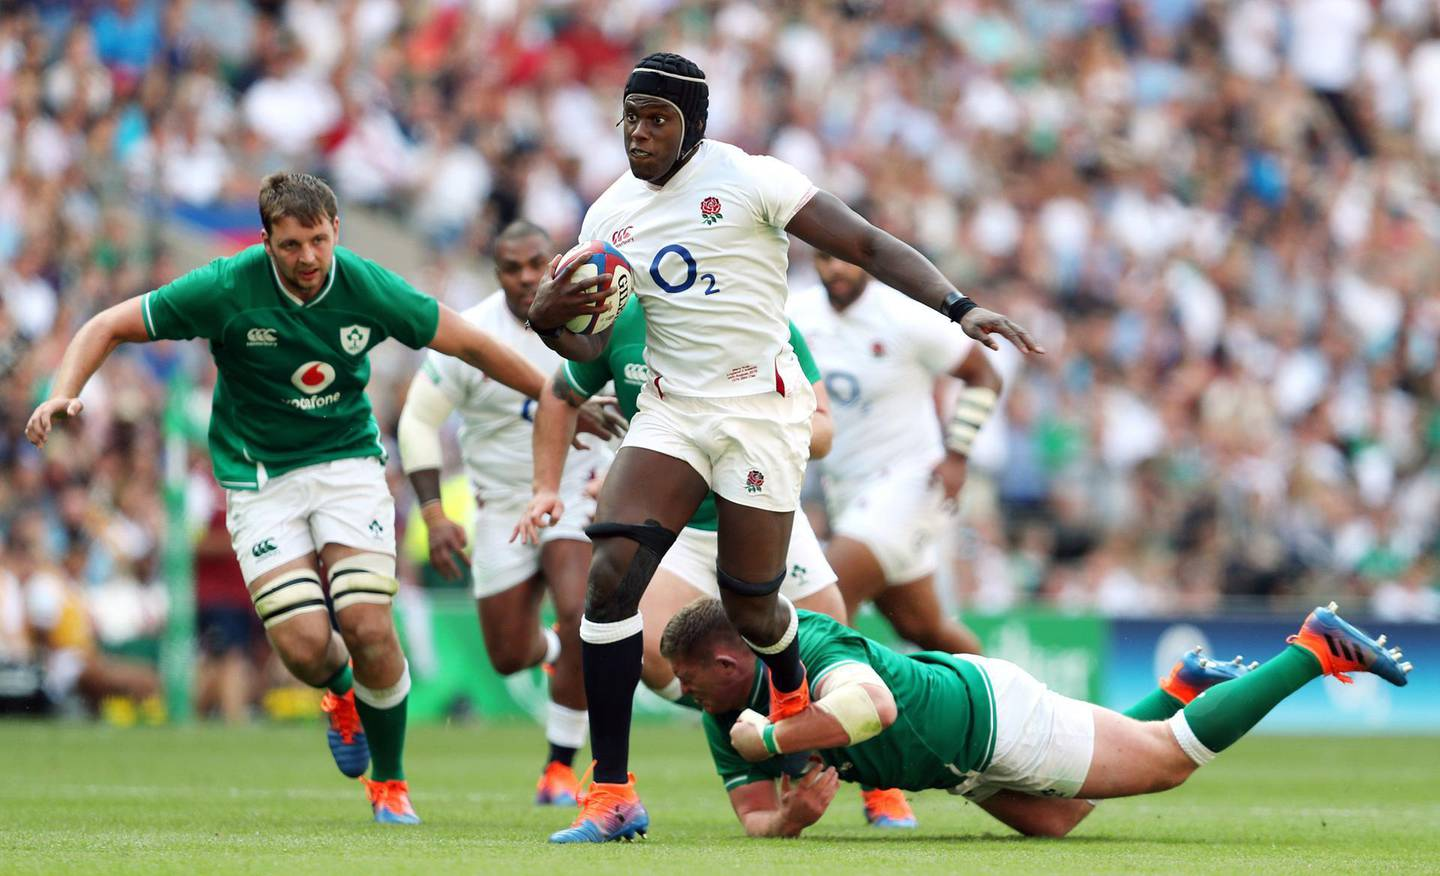 England's Maro Itoje scores his side's fourth try of the game during the Quilter International match at Twickenham Stadium, London. PRESS ASSOCIATION Photo. Picture date: Saturday August 24, 2019. See PA story RUGBYU England. Photo credit should read: David Davies/PA Wire. RESTRICTIONS: Editorial use only, No commercial use without prior permission